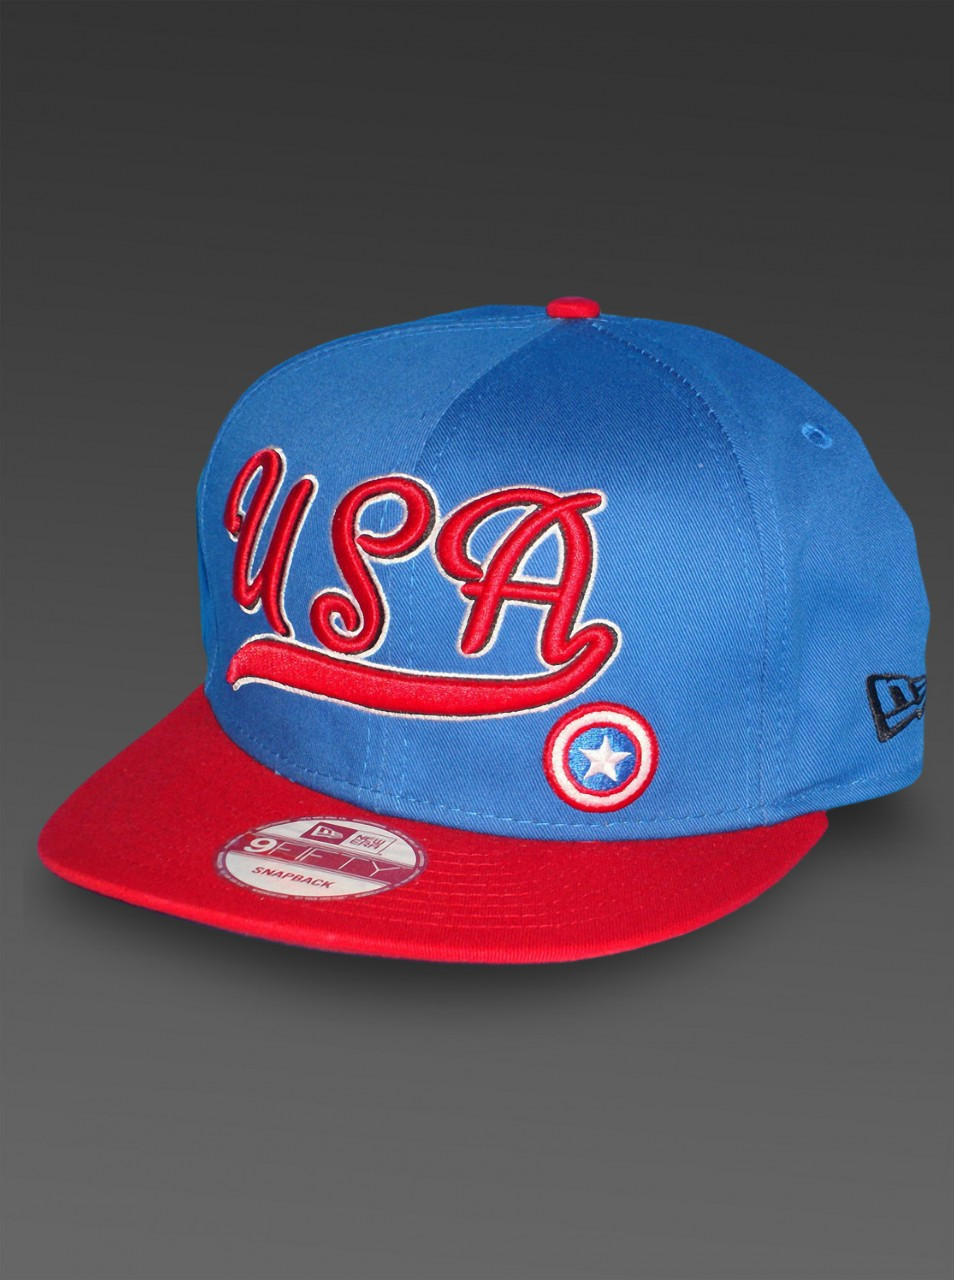 fd2535c79c8 ... CAPTAIN AMERICA New Era Marvel Hat USA Patriot 9Fifty Snapback Hat. USA  new era cap